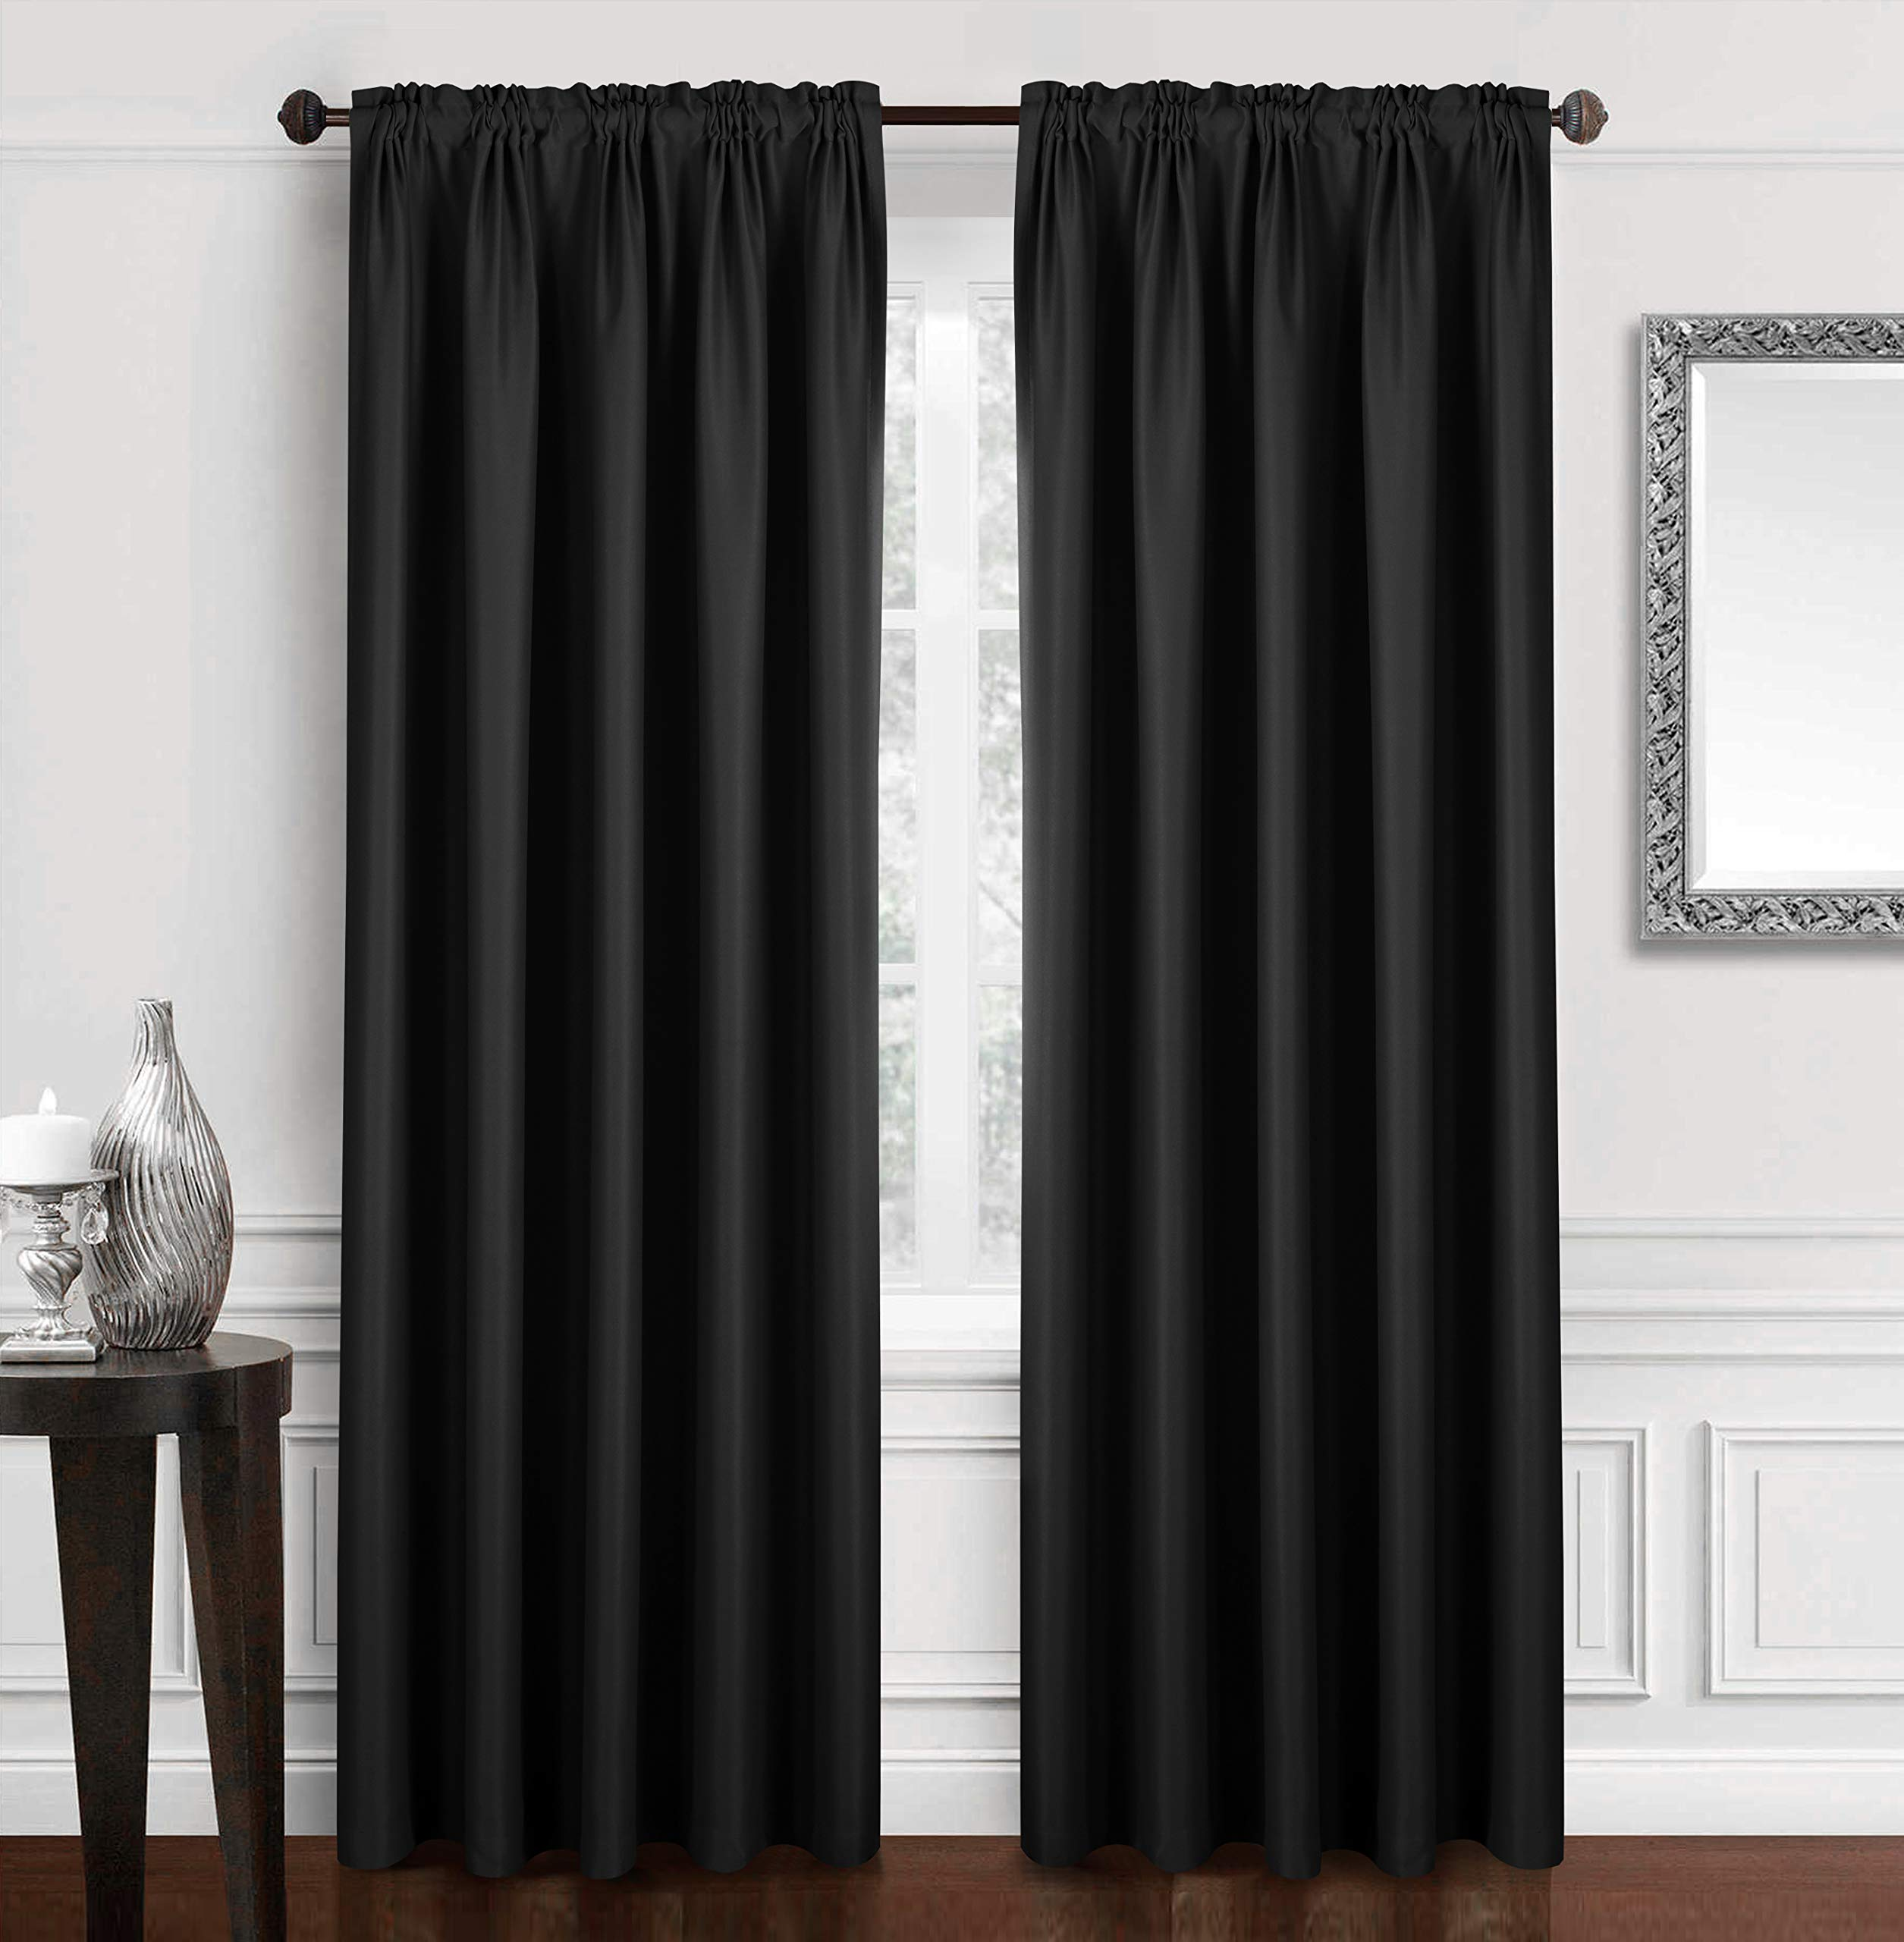 Dreaming Casa Solid Blackout Curtain for Bedroom 96 Inches Long Draperies Window Treatment 2 Panels Black Rod Pocket 2(52'' W x 96'' L) by Dreaming Casa